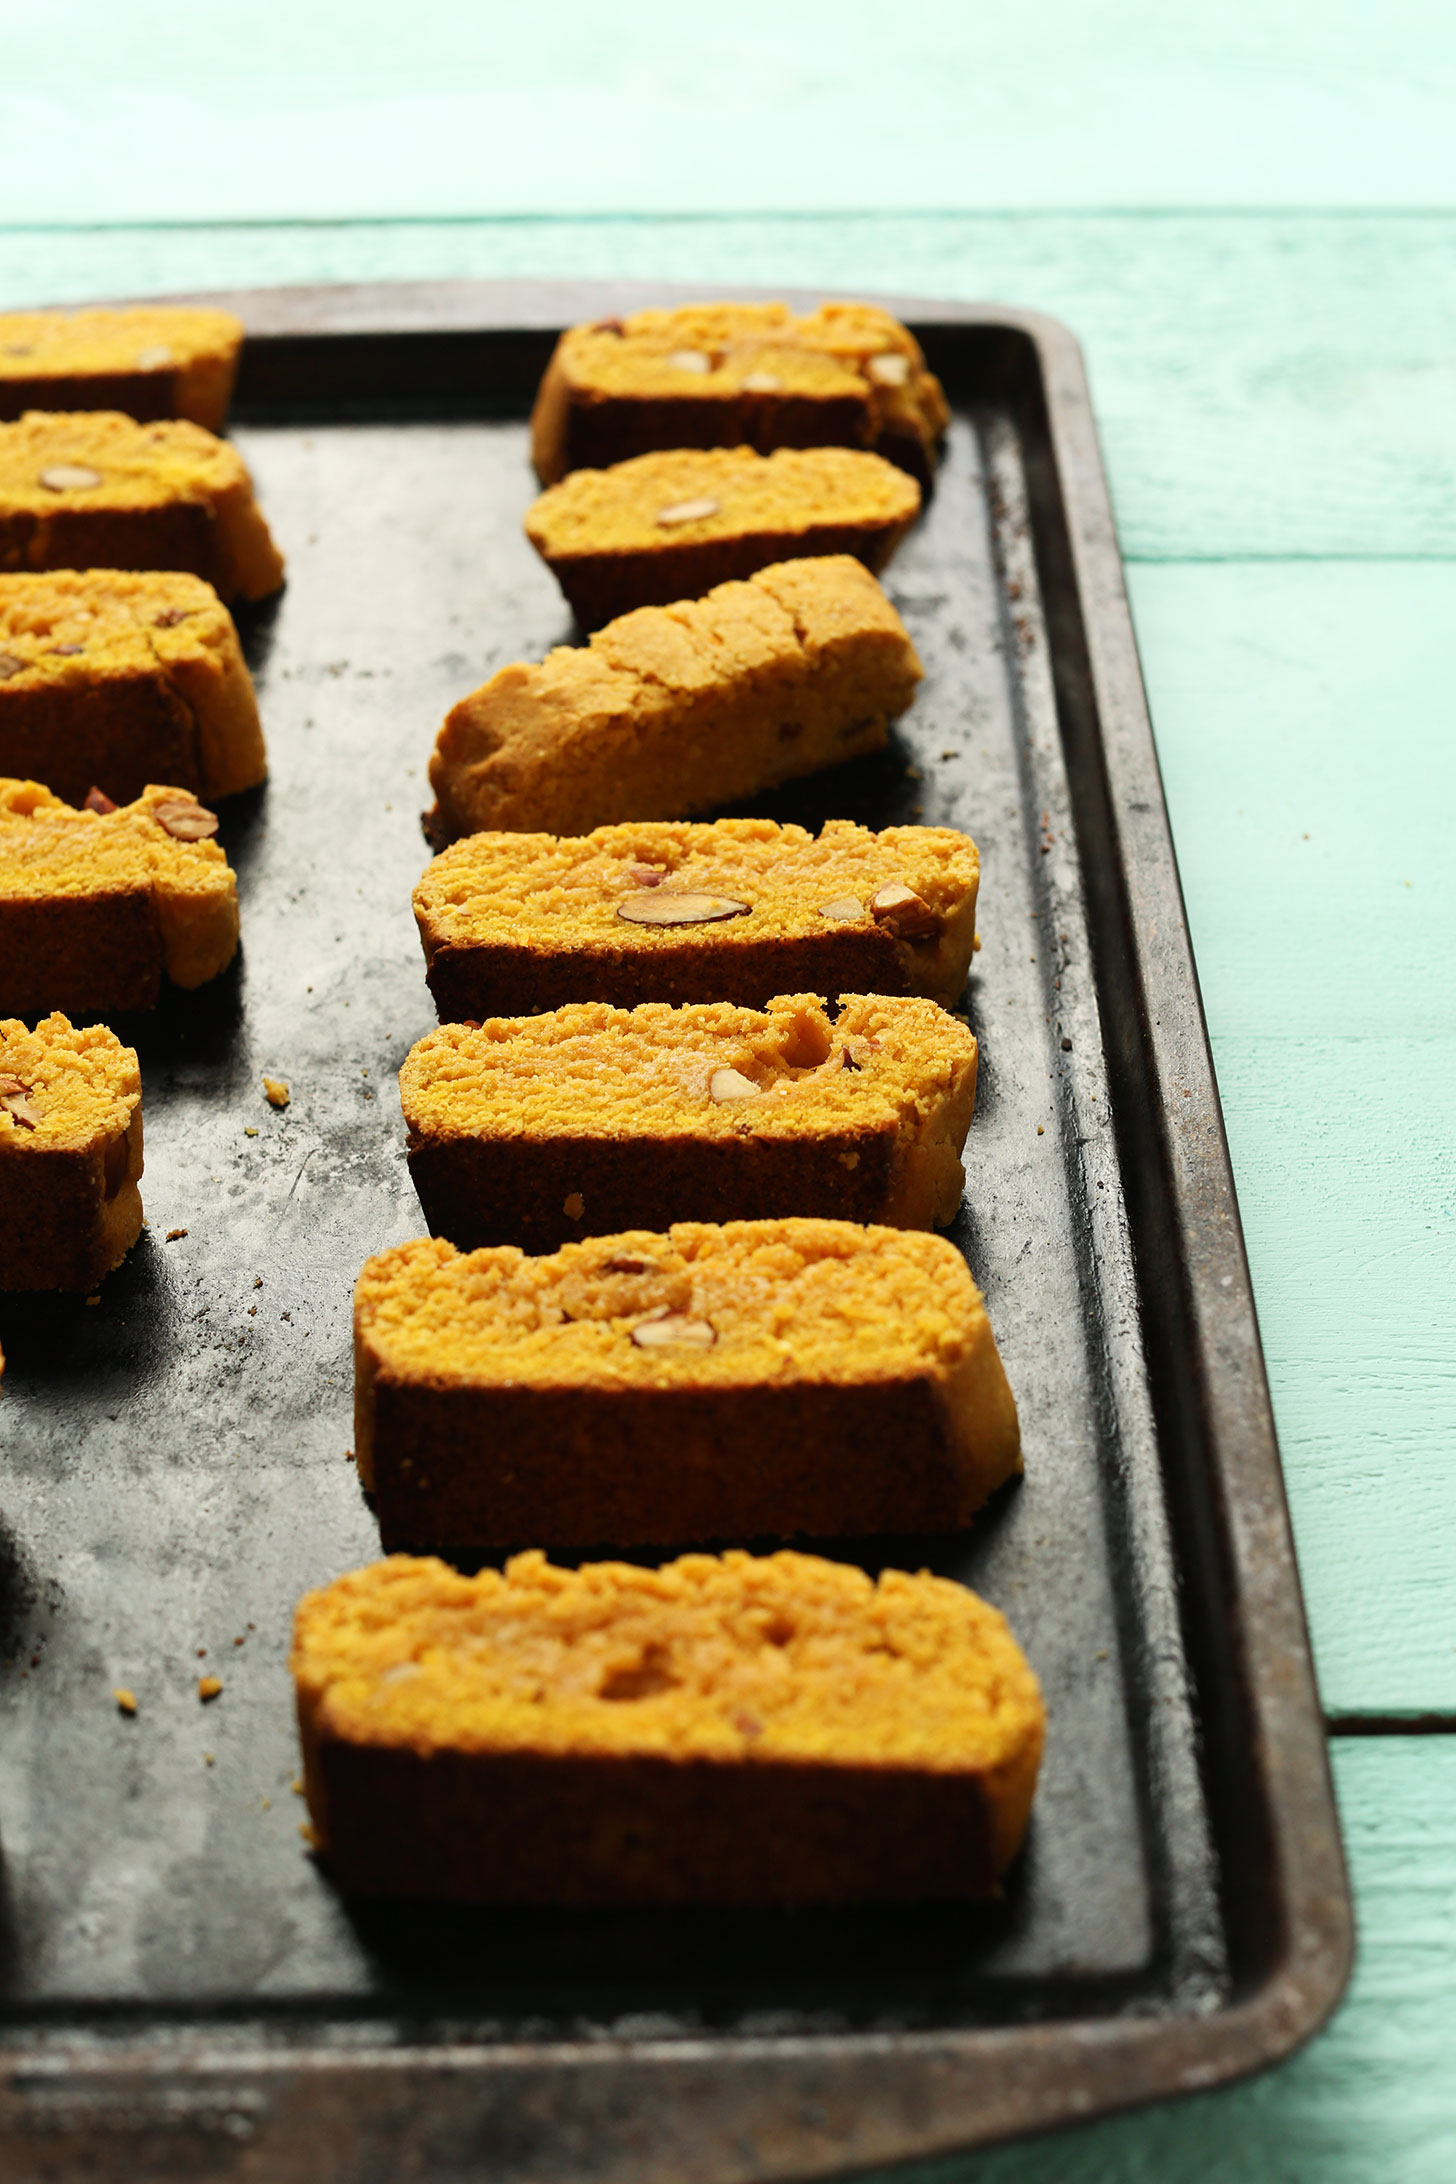 Baking sheet with rows of our vegan Orange Almond Biscotti treats